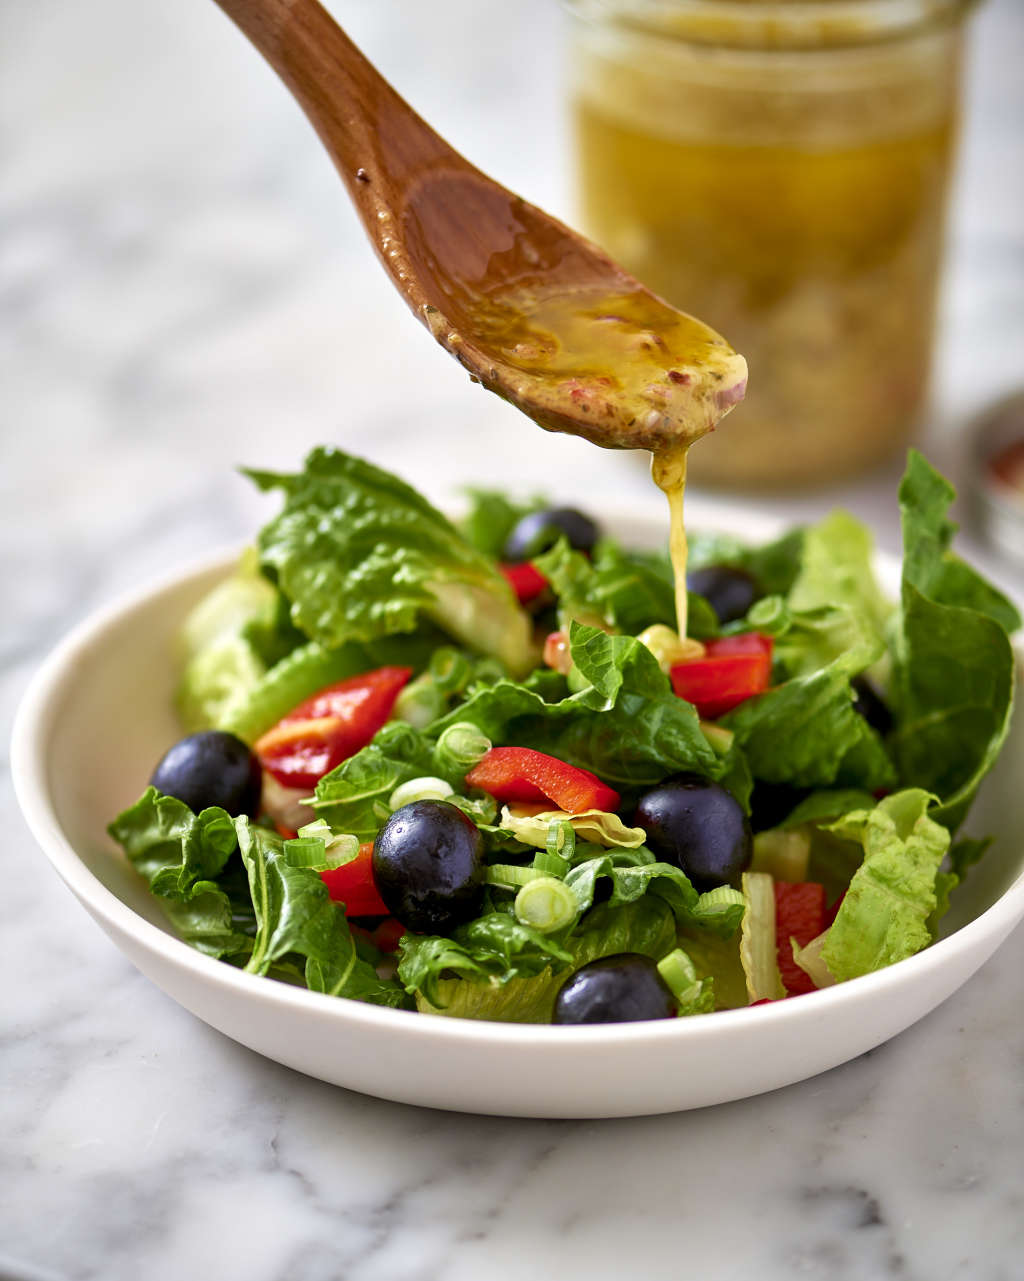 Why You Should Still Make the Salad Dressing from Scratch